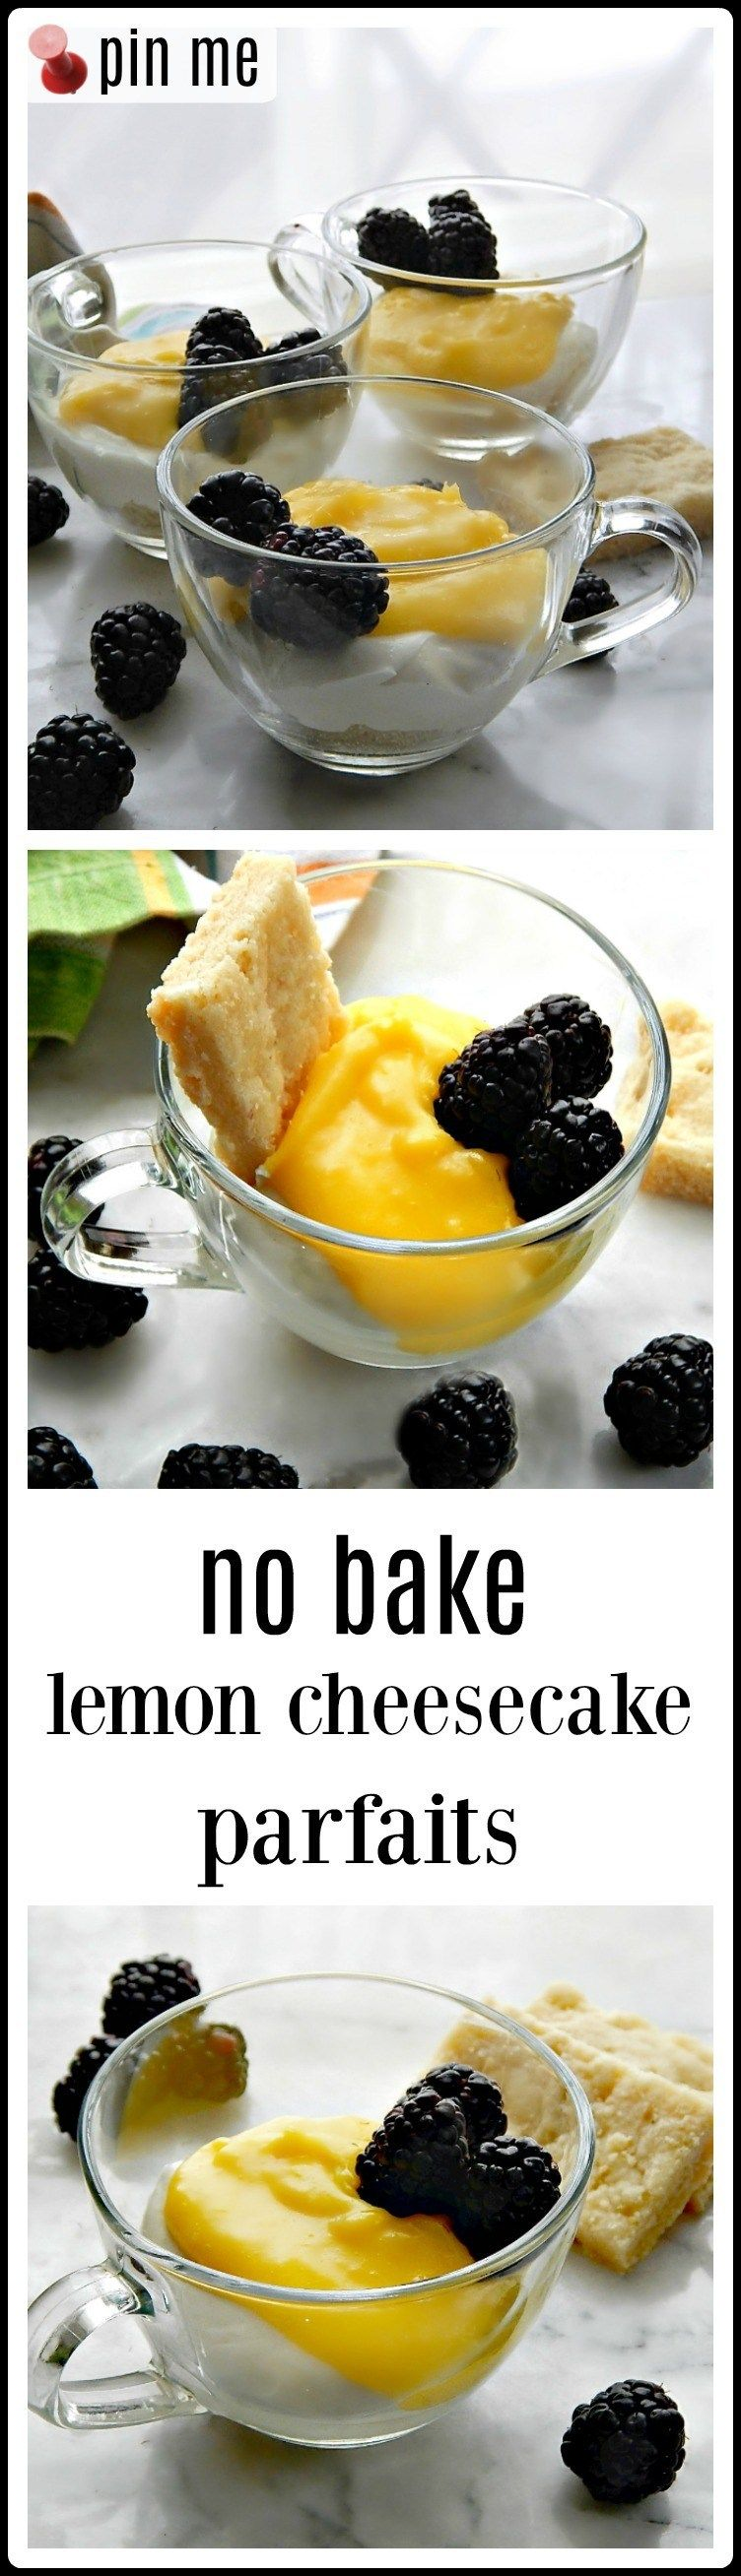 Easy Elegant No Bake Lemon Parfait No Bake Lemon Cheesecake Parfaits are creamy  dreamy deliciousness A base of shortbread crumbs grounds the lemony cheesecake and the to...